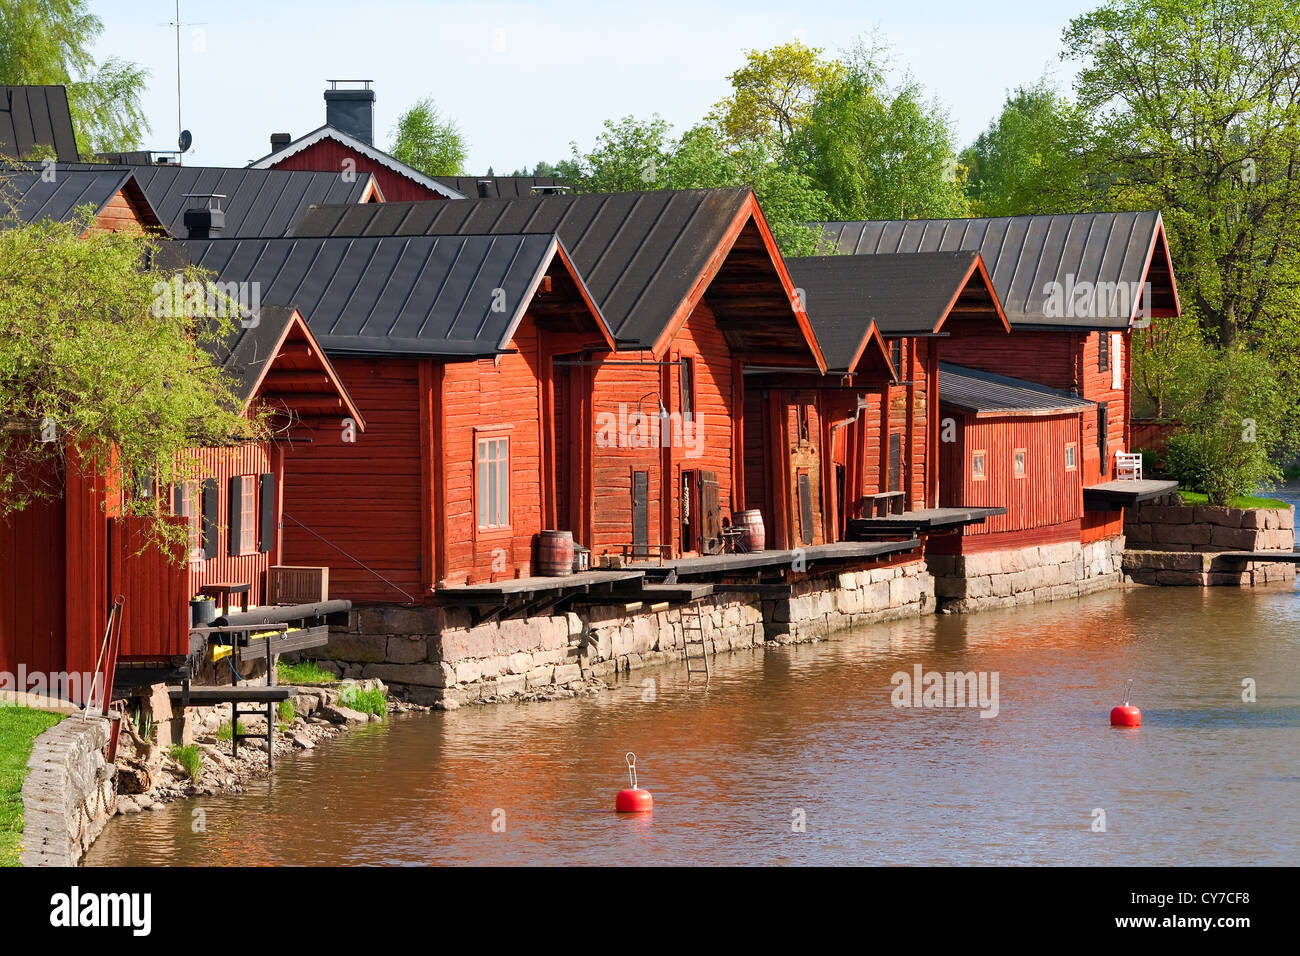 Picturesque wooden houses and the river in the town of Porvoo, Finland. - Stock Image